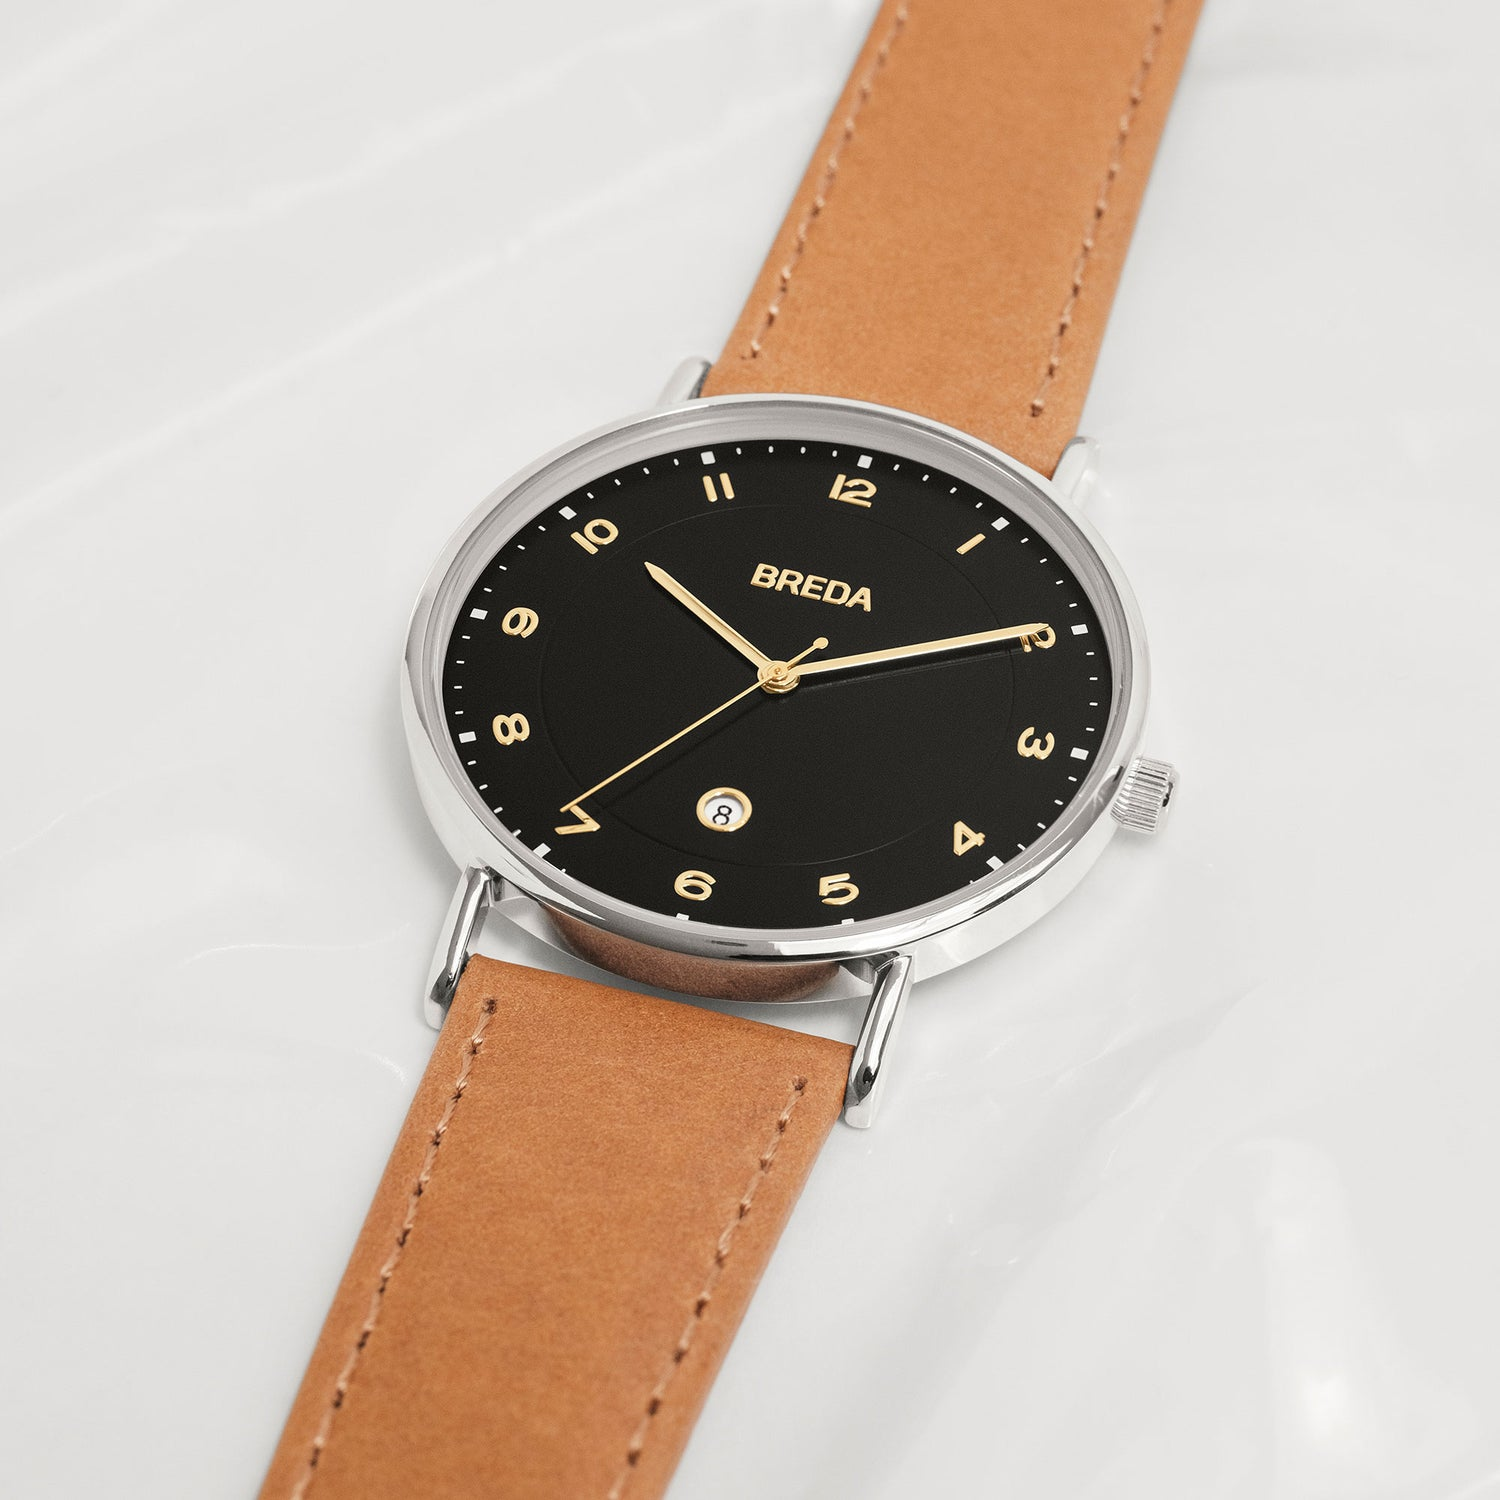 breda-pei-1739b-silver-brown-leather-watch-studio